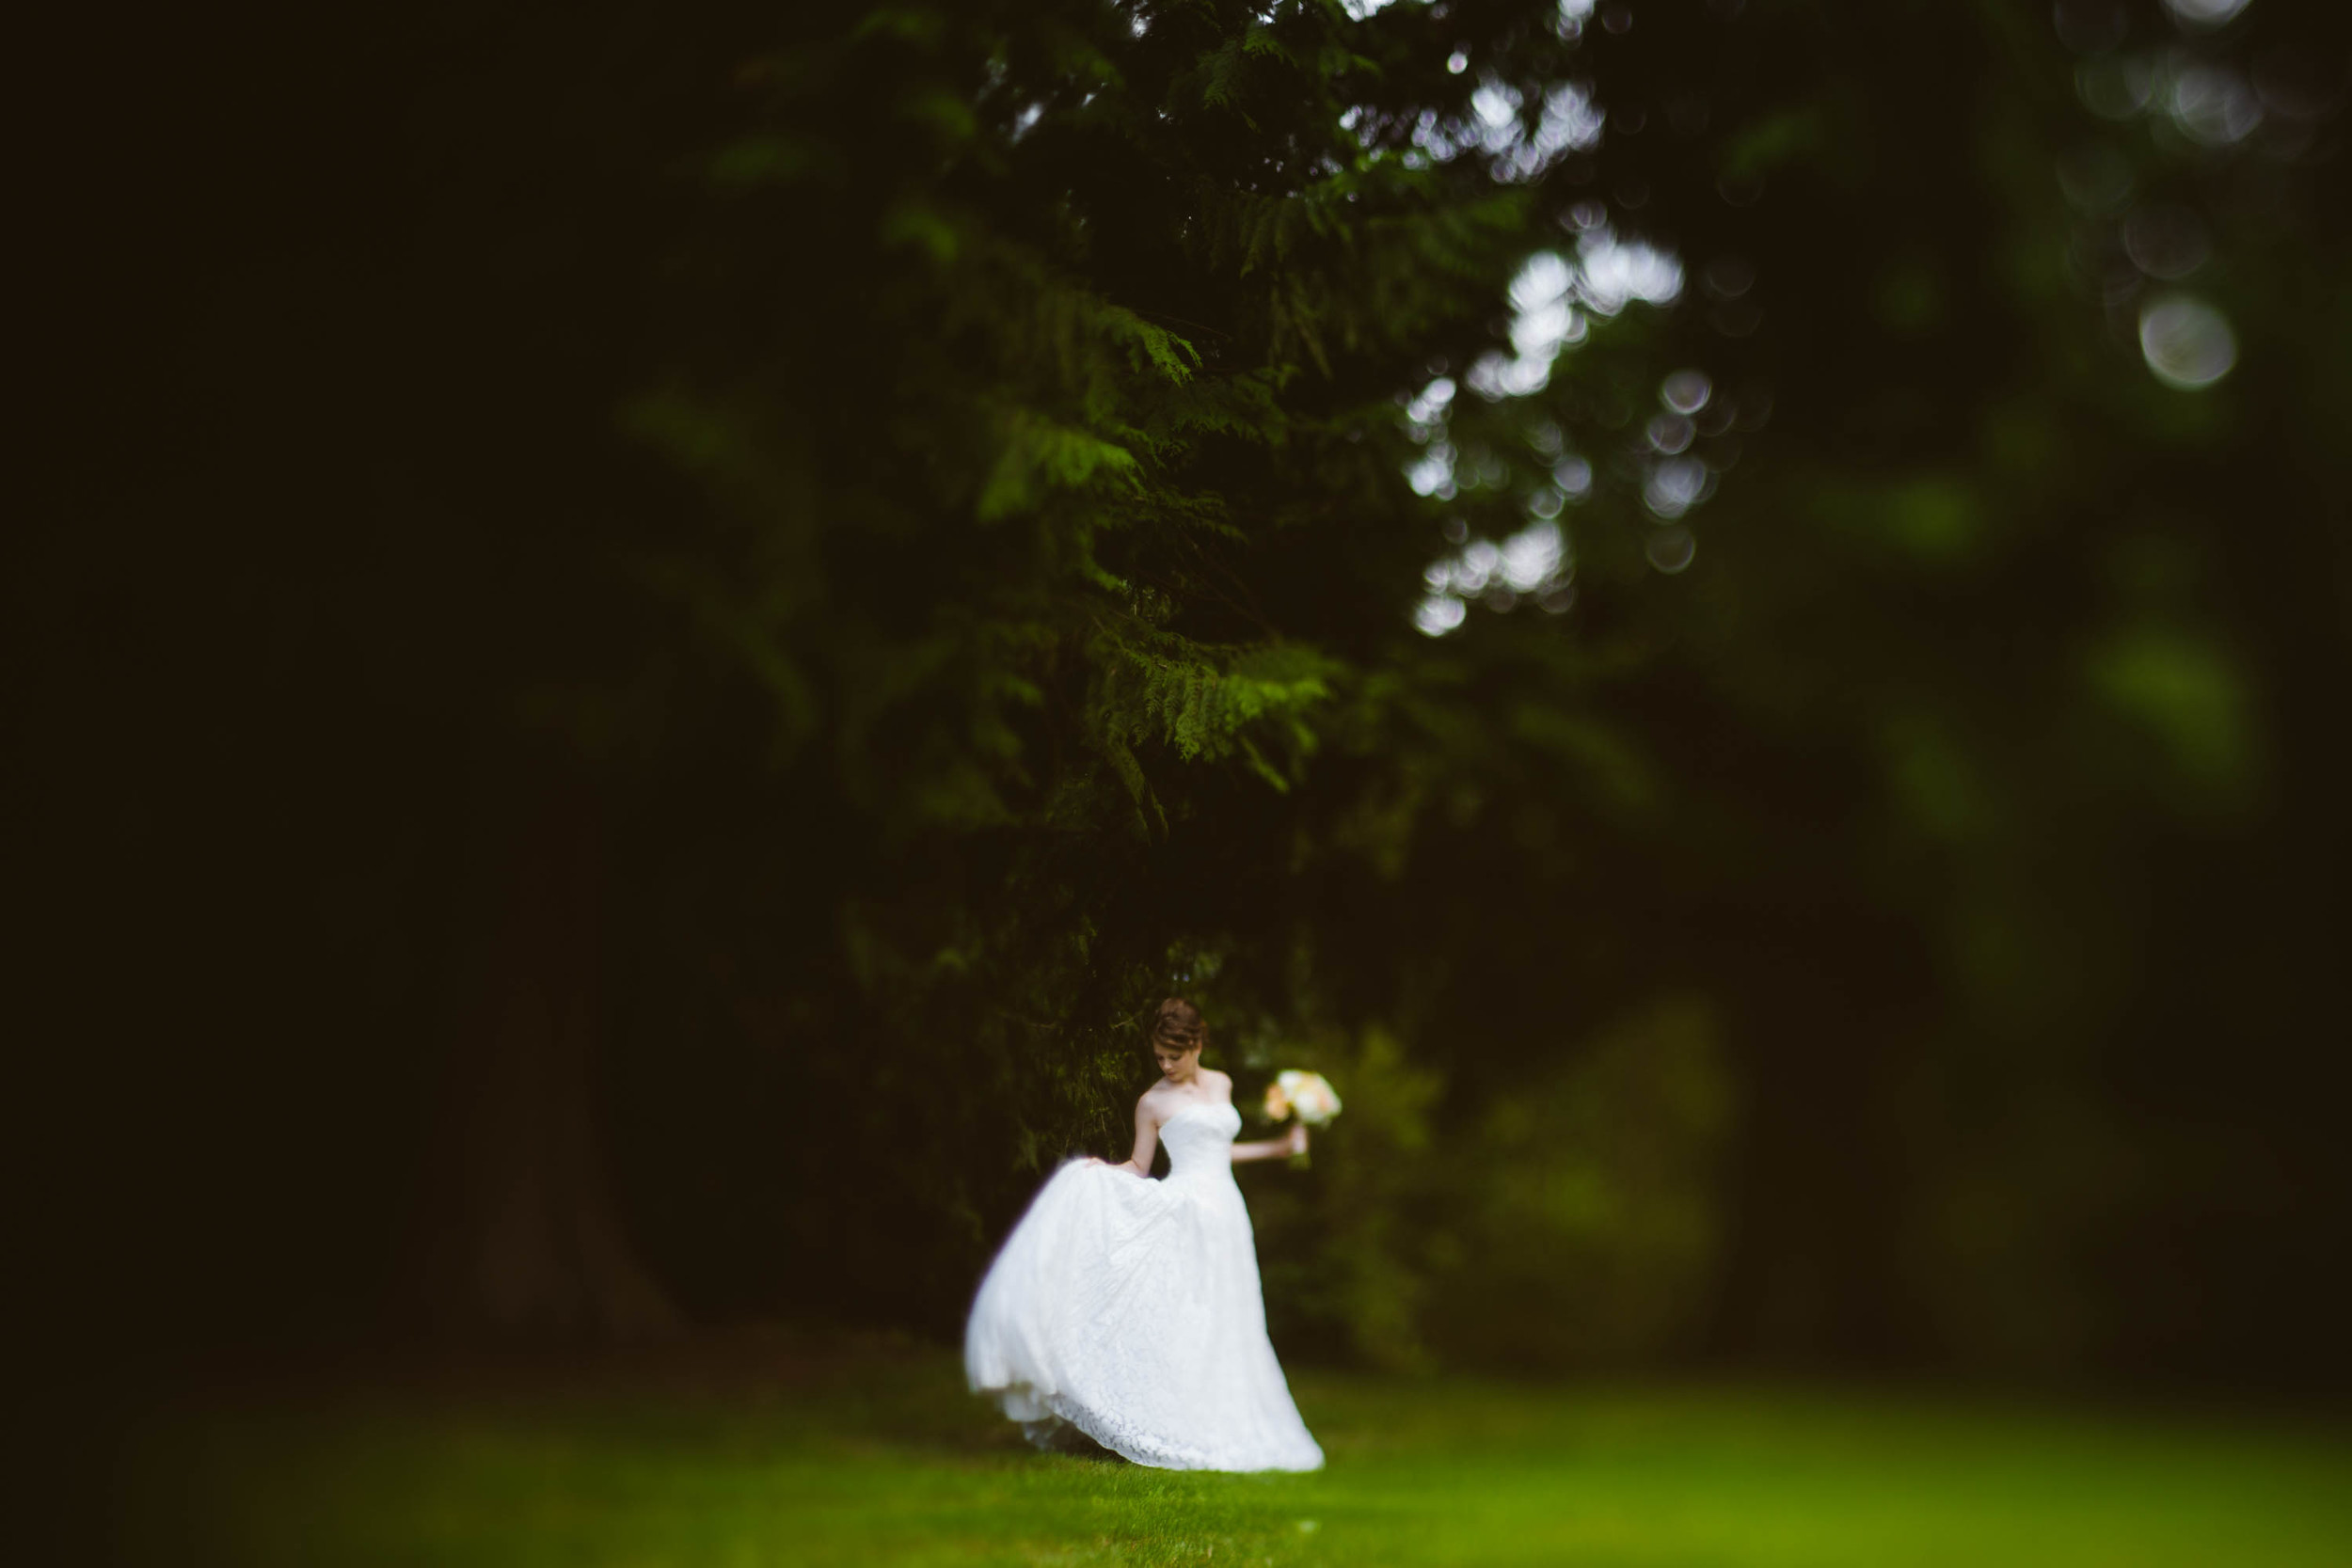 The bride in the dreamlike forest.